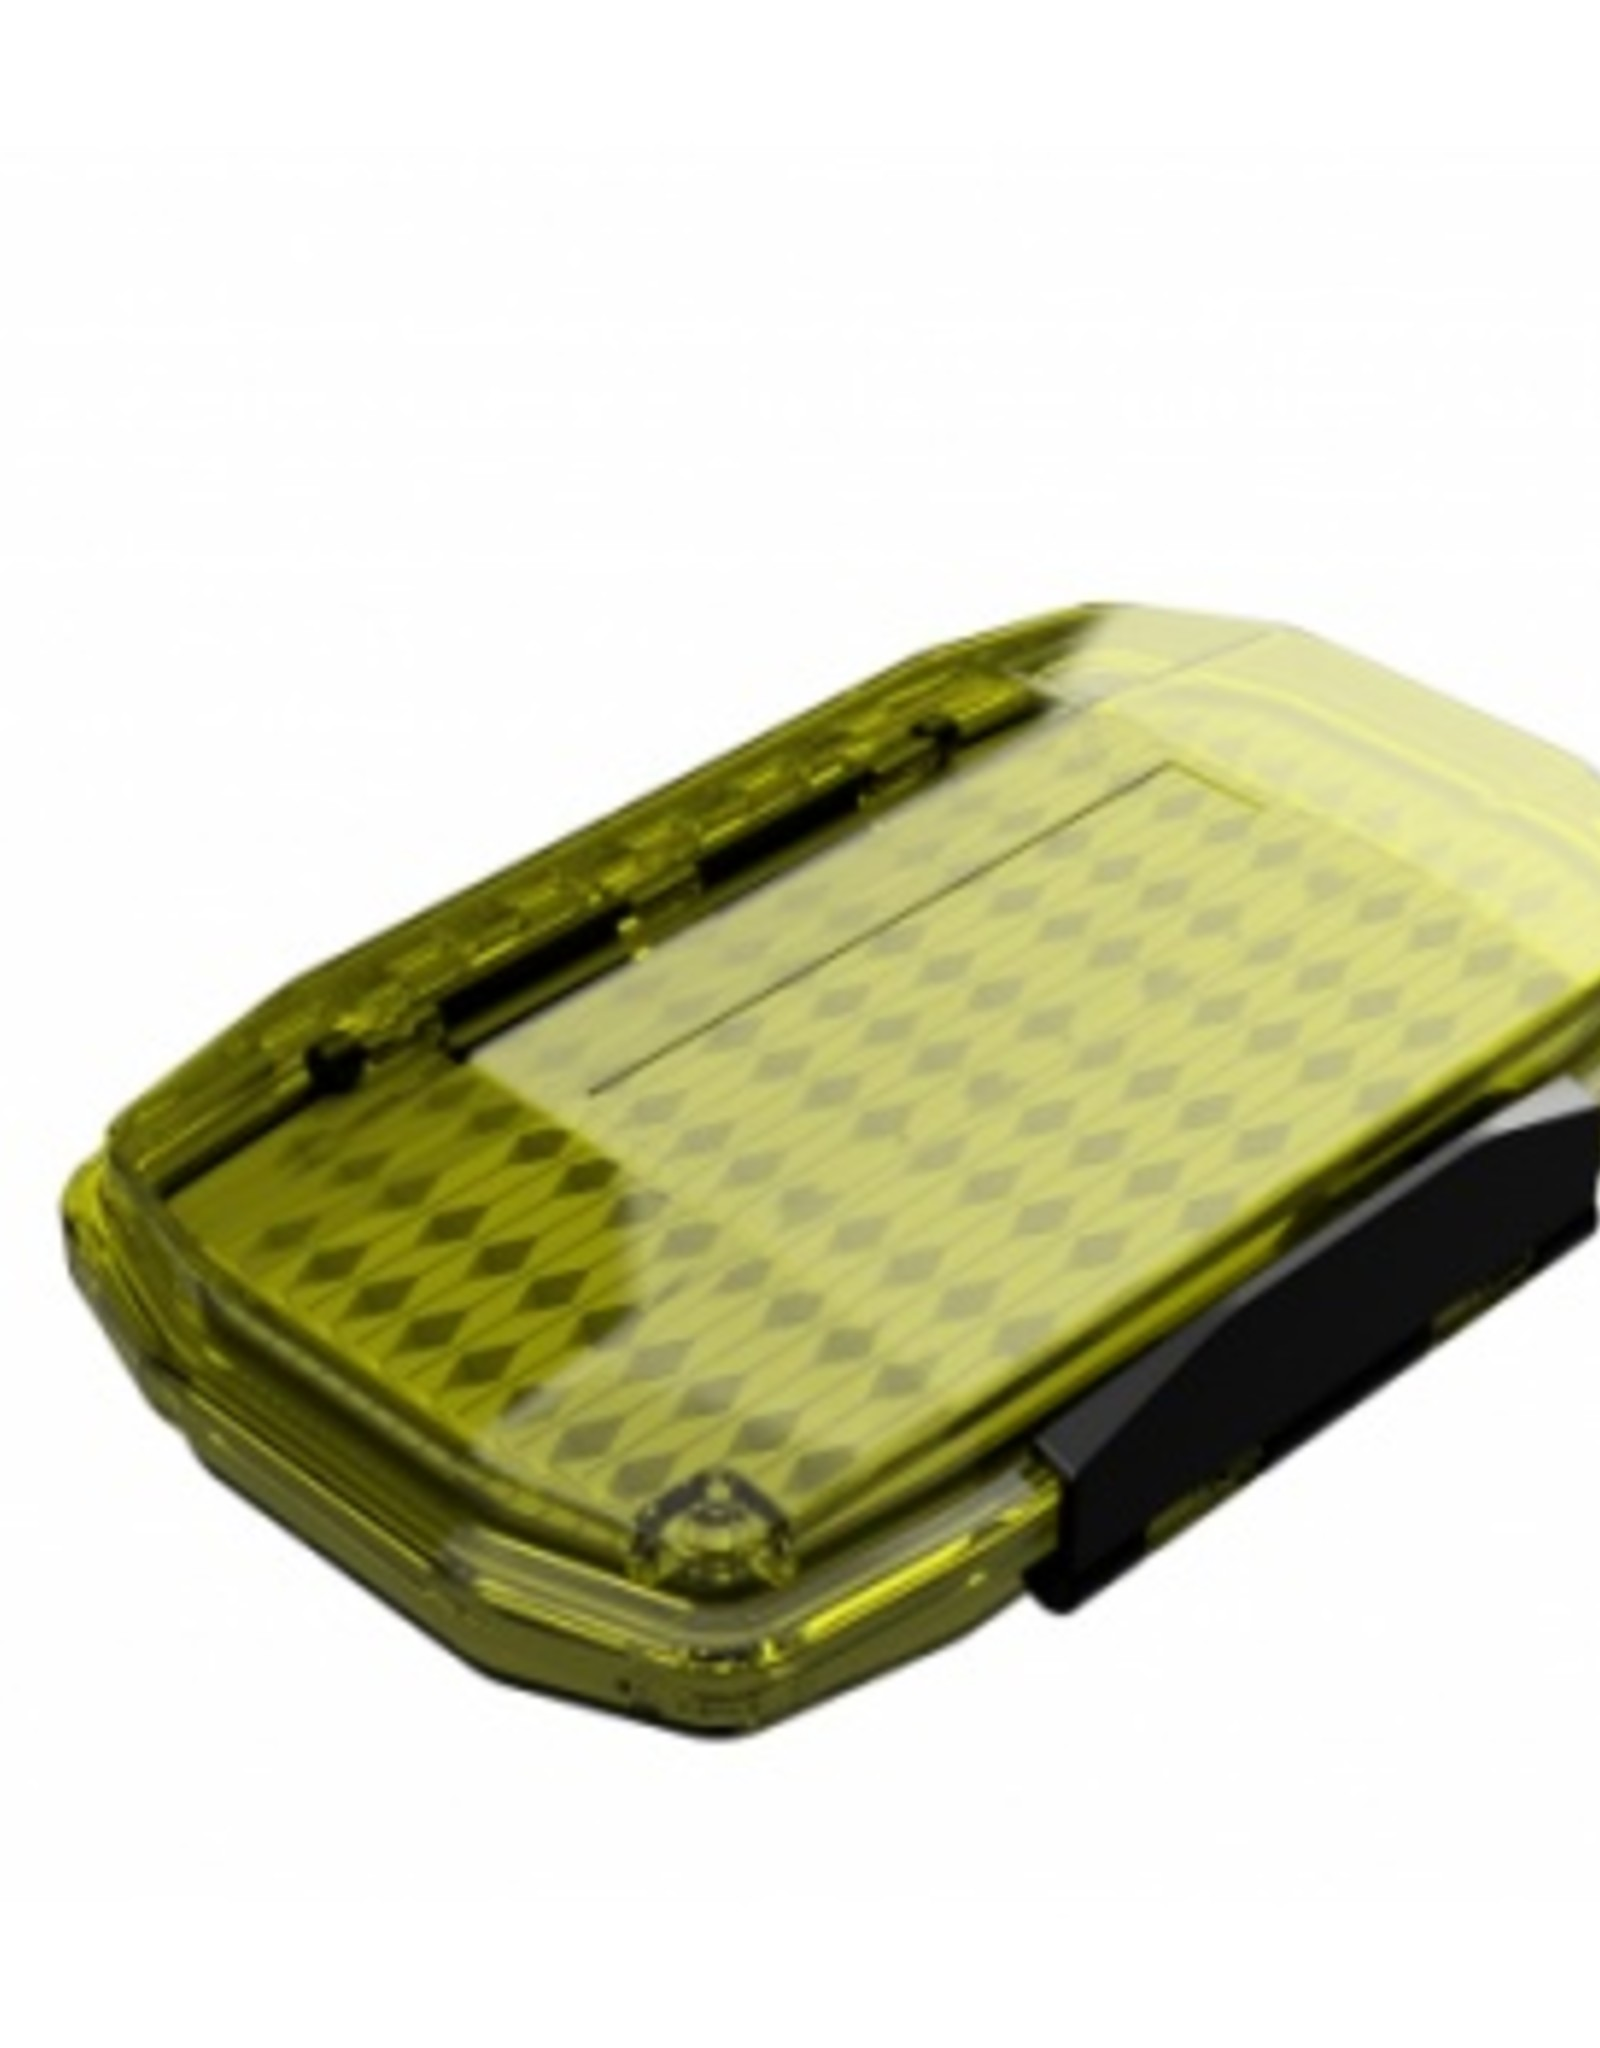 Umpqua Umpqua HD Waterproof Fly Box - Day Tripper - Olive